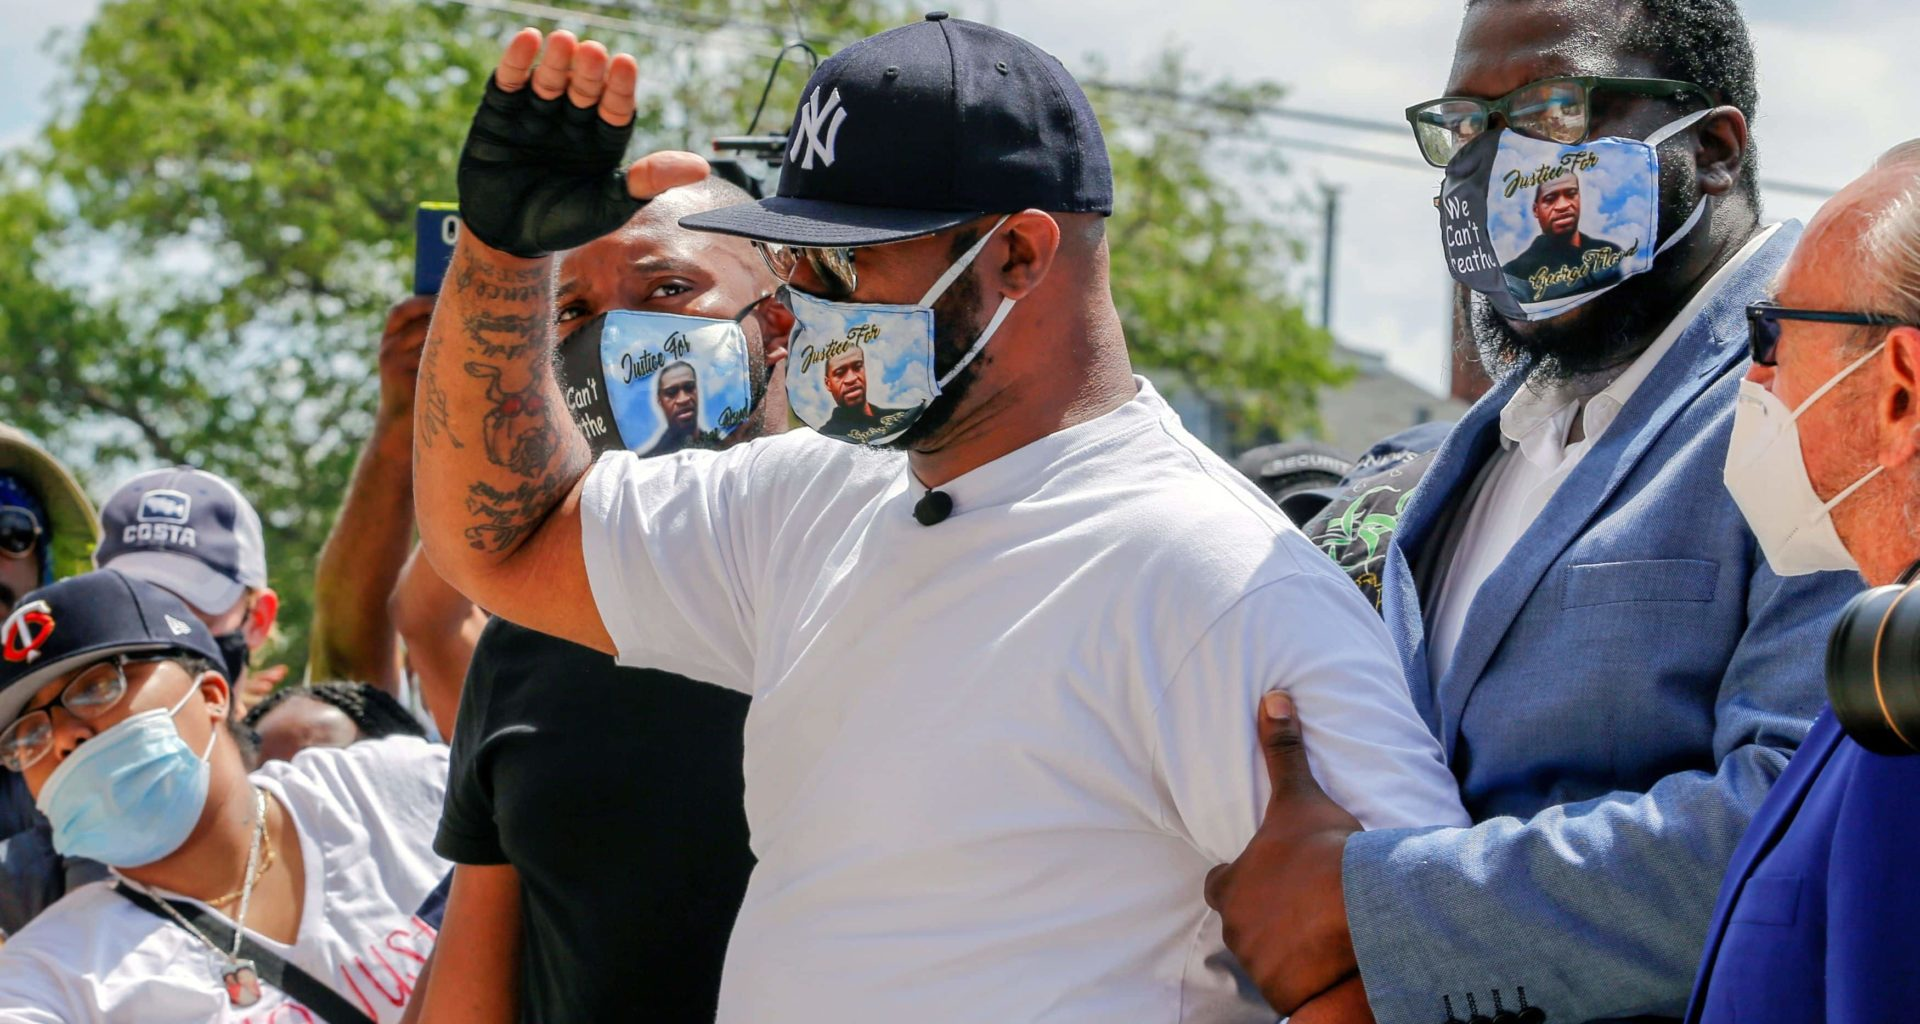 Angry White Man Tears Baltimore Protesters Apart In Jaw-Dropping Rant (VIDEO)